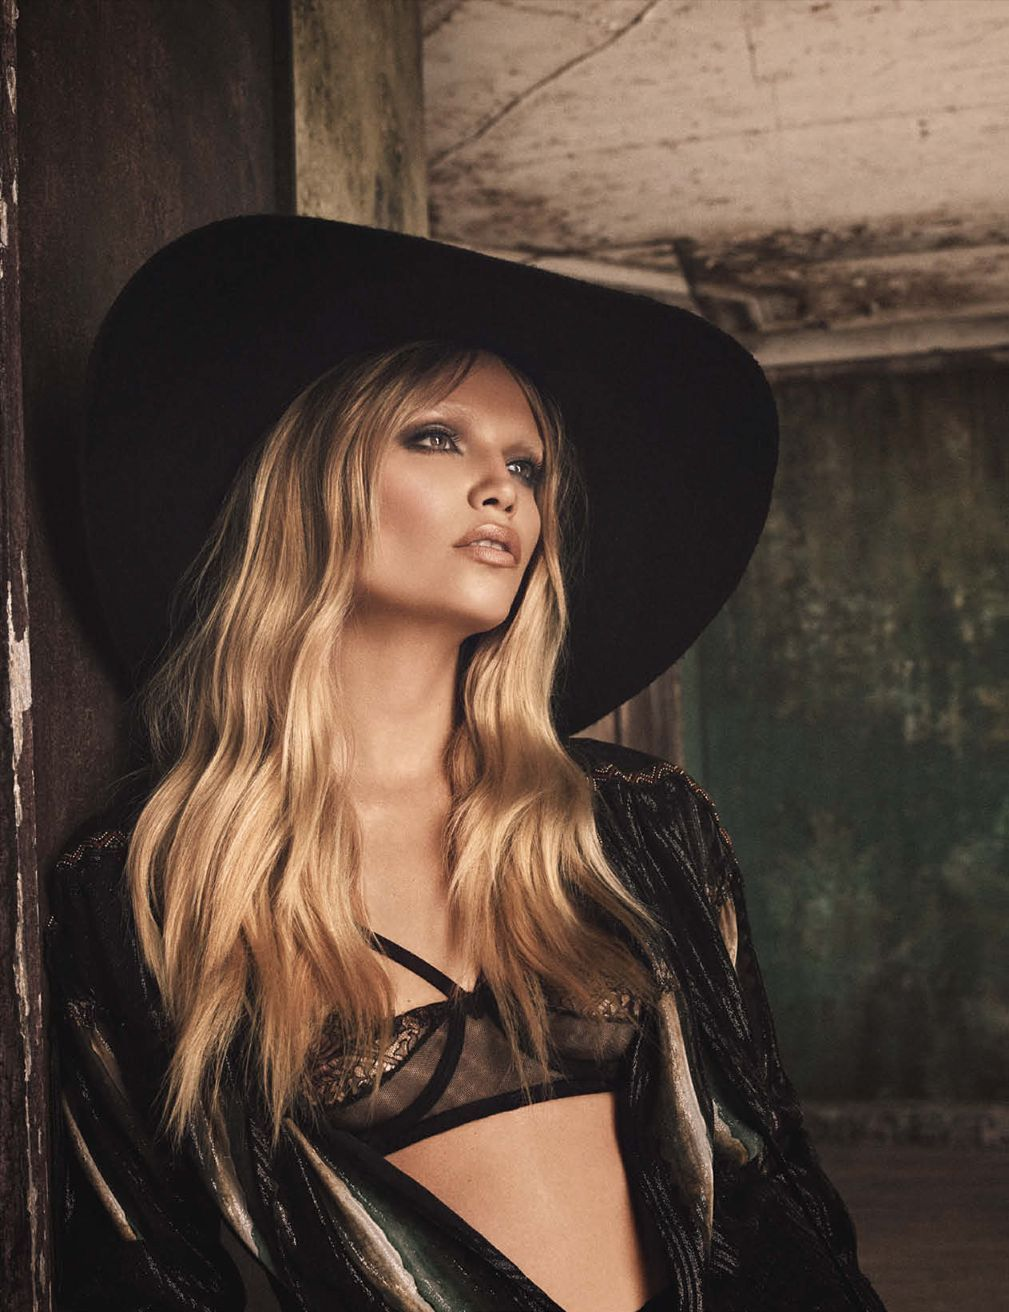 Ass Natasha Poly nude (17 foto and video), Tits, Sideboobs, Instagram, cameltoe 2019